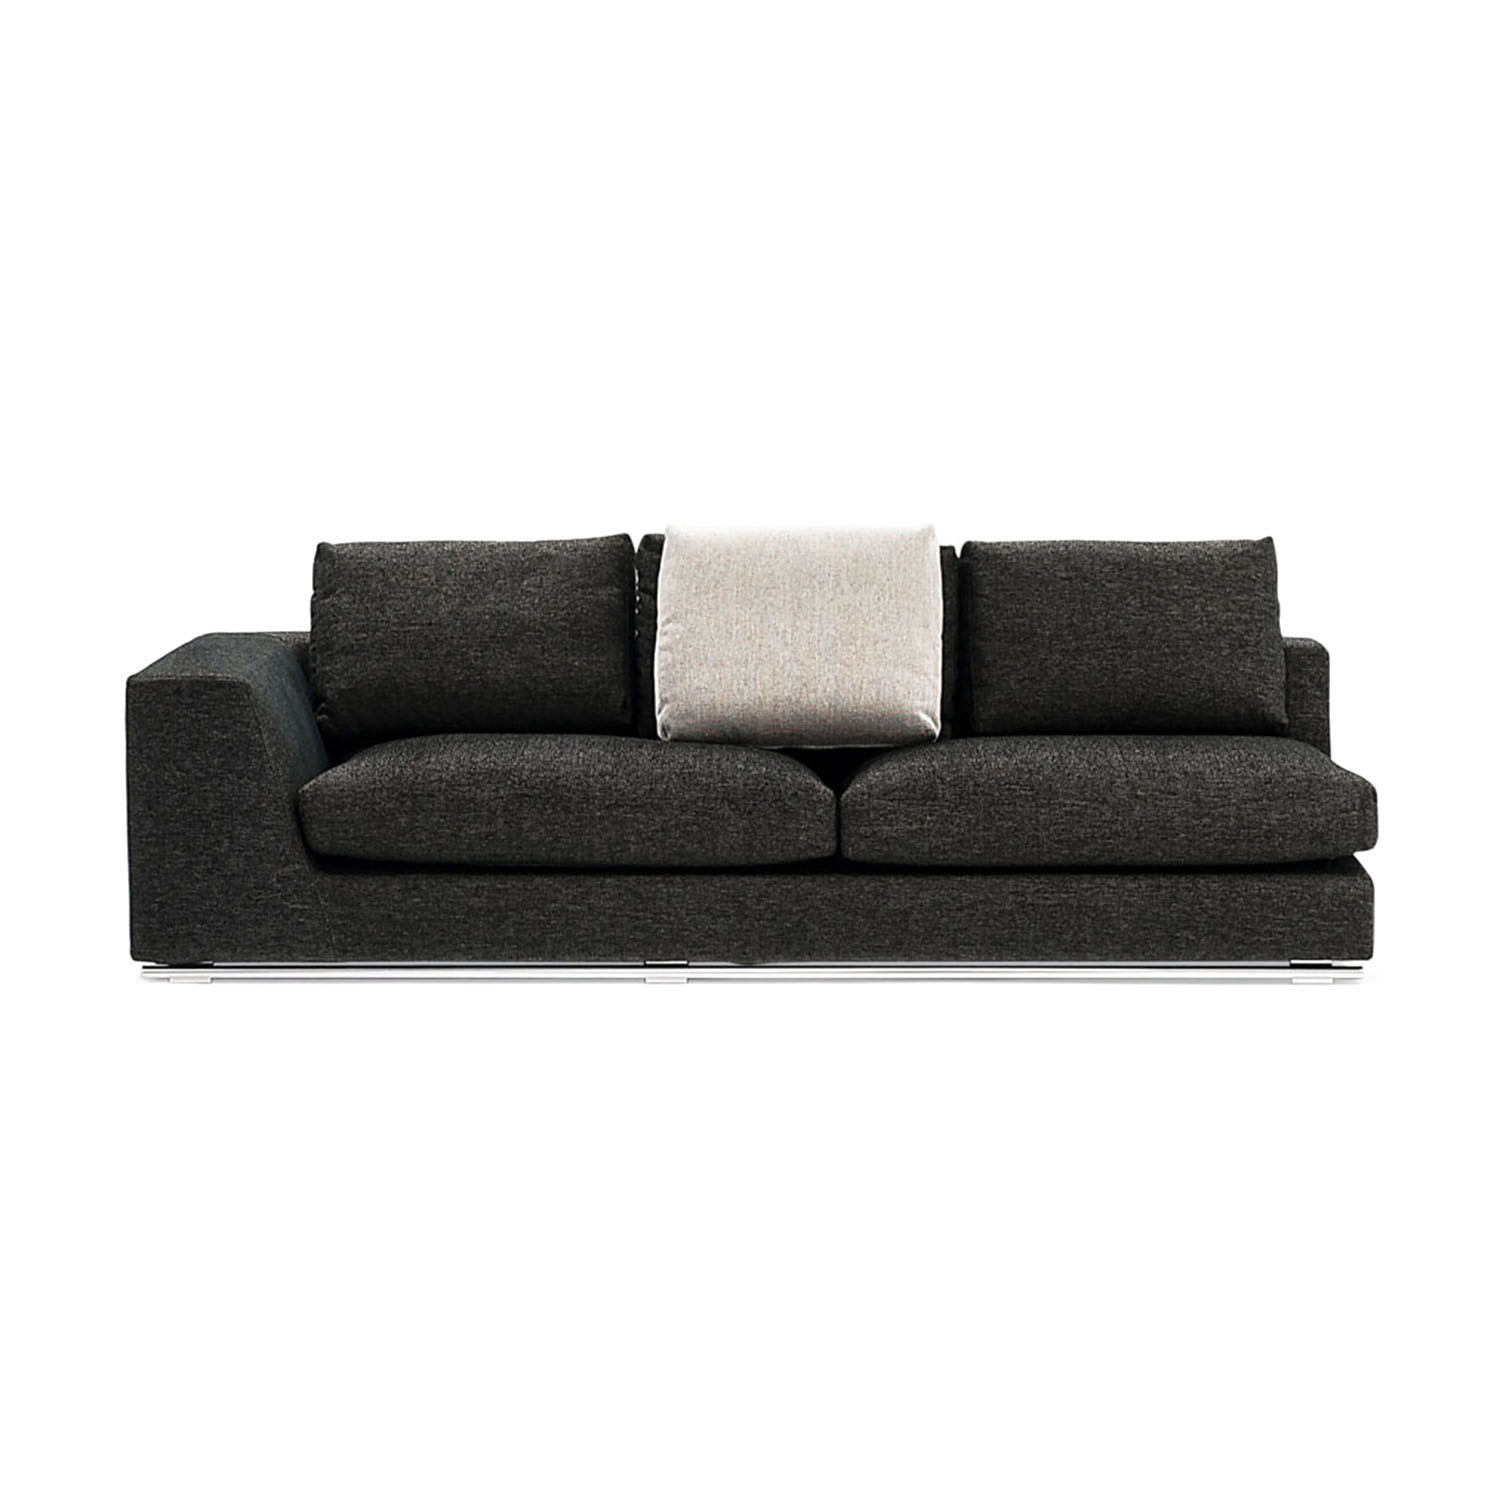 Comodo sectional sofa left chaise ottoman zuri for Sofas pequenos y comodos